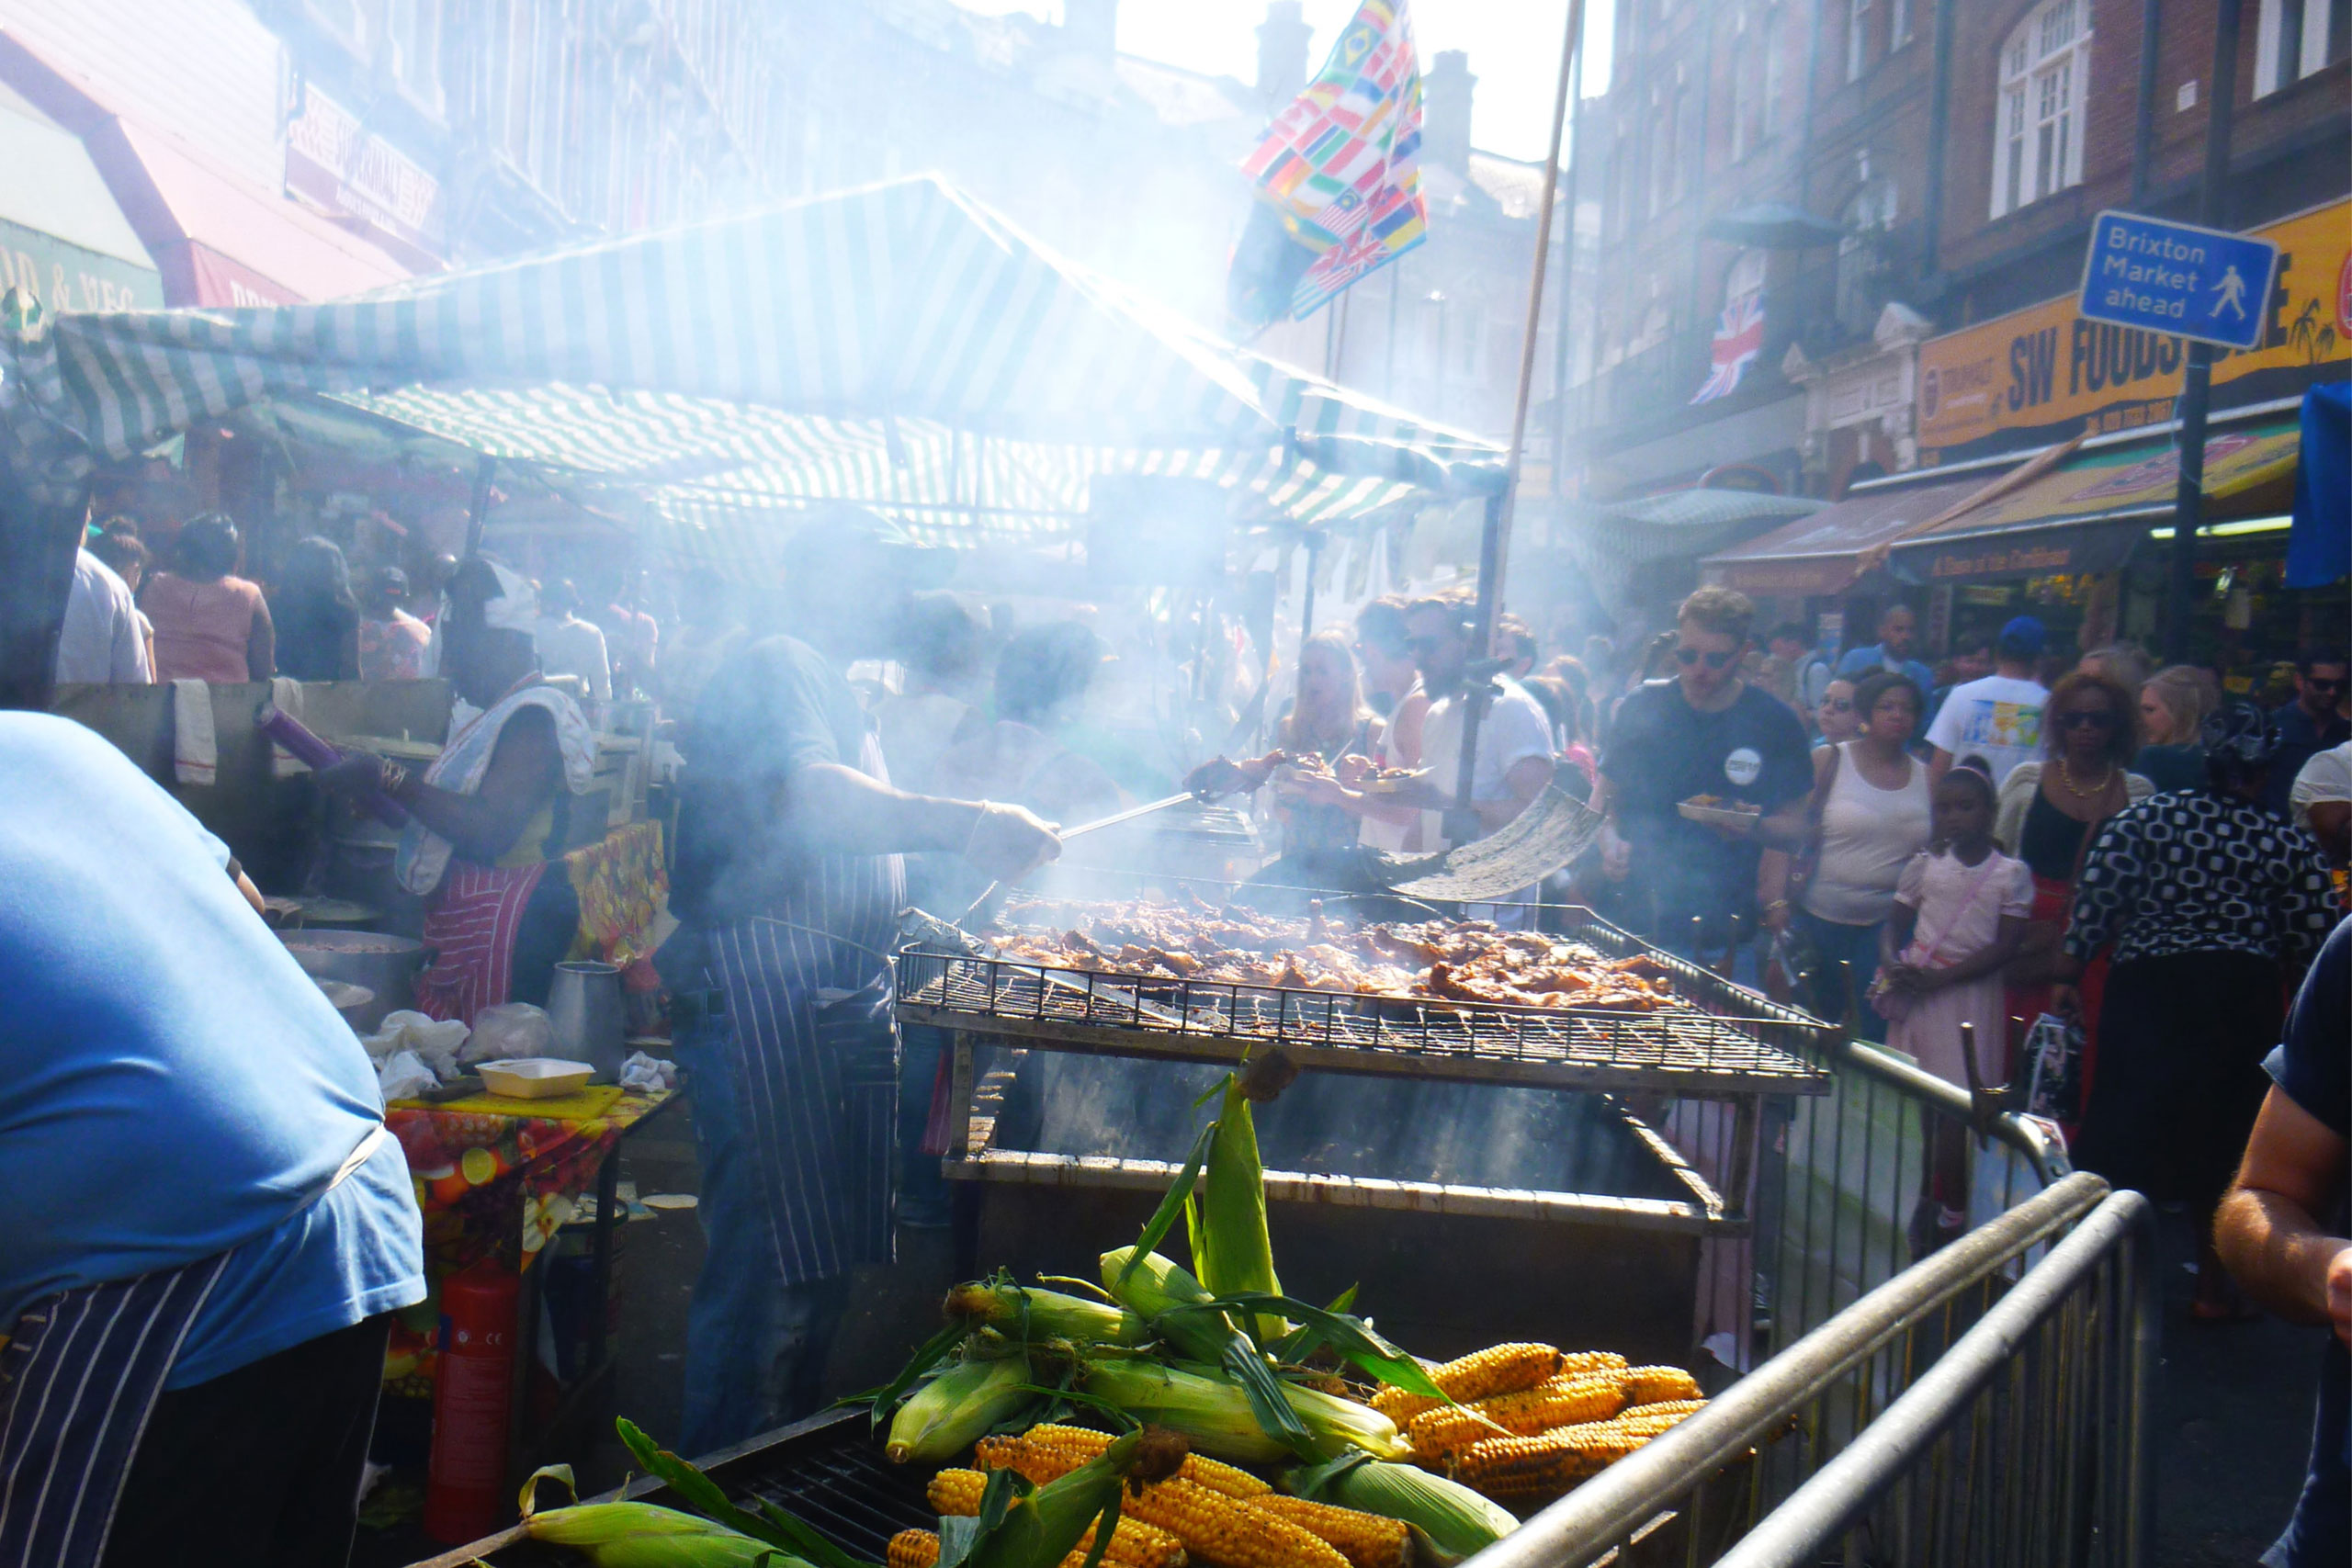 Brixton food market. There is a barbecue with smoke rising from it and fresh corn. The market is crowded with people browsing.